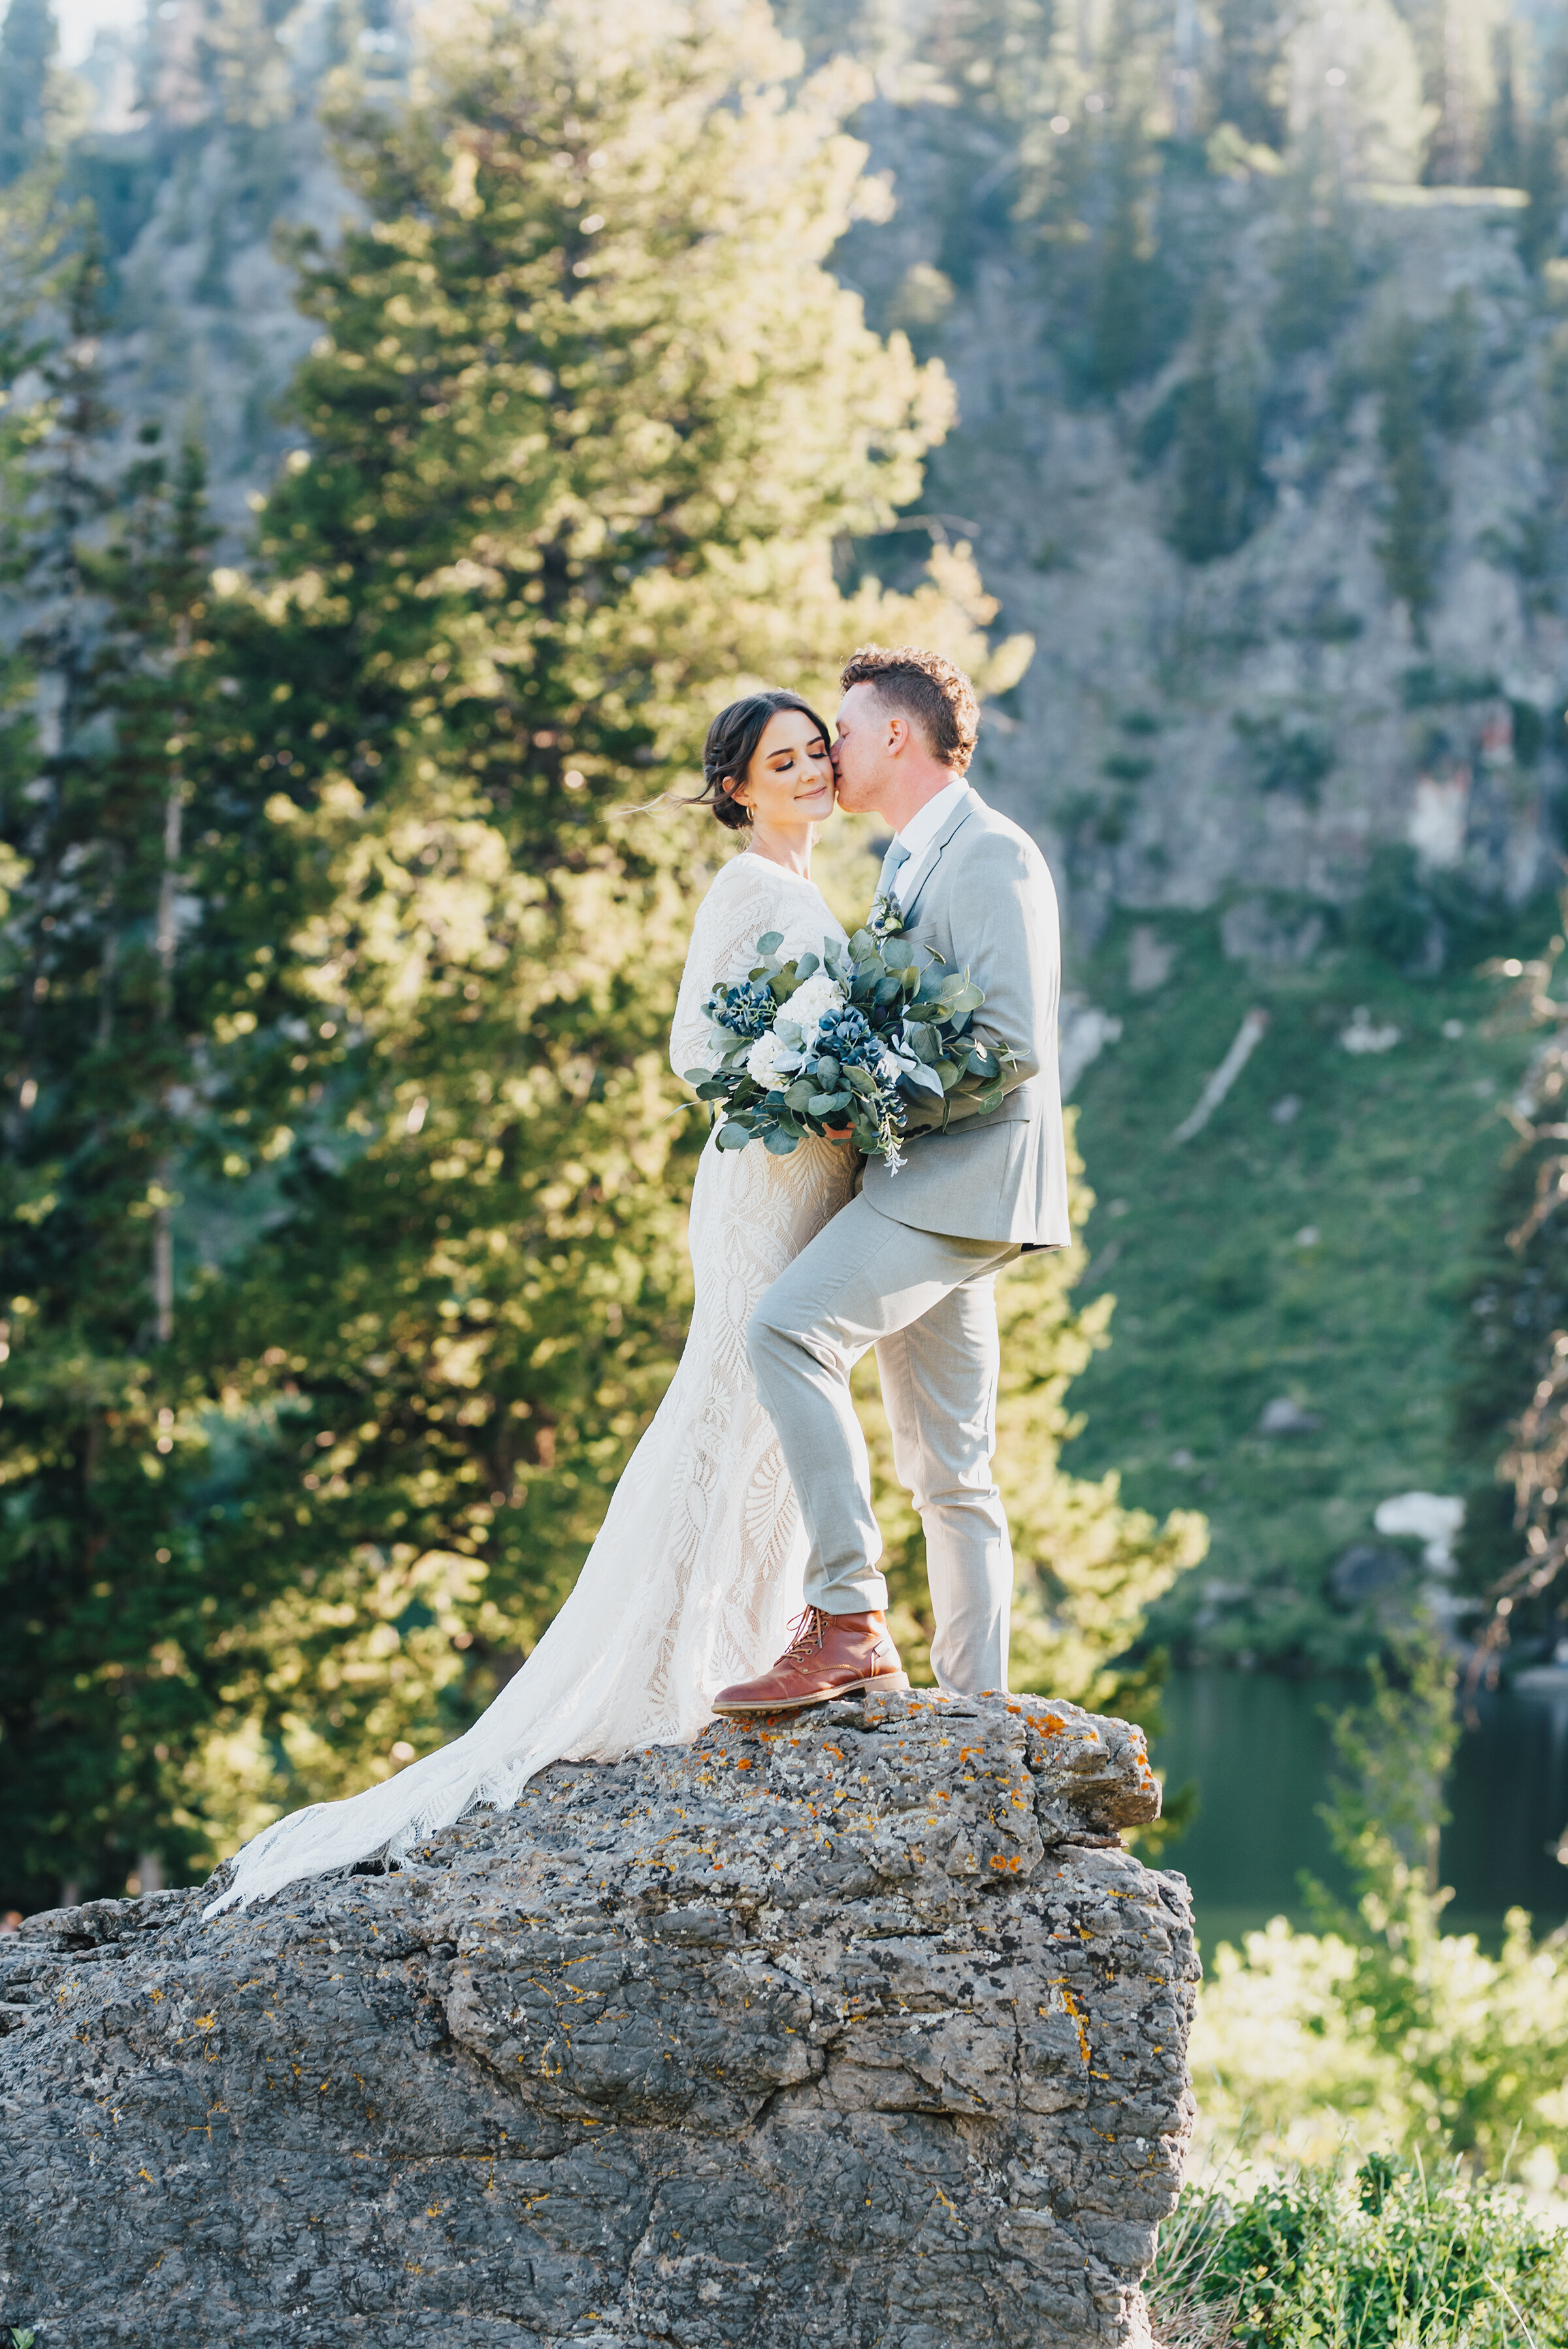 Stunning artsy capture of bride and groom during their formals up Logan canyon. Kristi Alyse photography Logan Utah wedding photographer forest nature dreamy formals Logan canyon Tony Grove scenic bridals Northern Utah photographer Utah brides bride and groom Cache Valley #kristialysephotography #loganutahphotographer #tonygrove #logancanyon #utahweddingphotographer #bridals #formals #wildflowers #northernutah #utahbrides